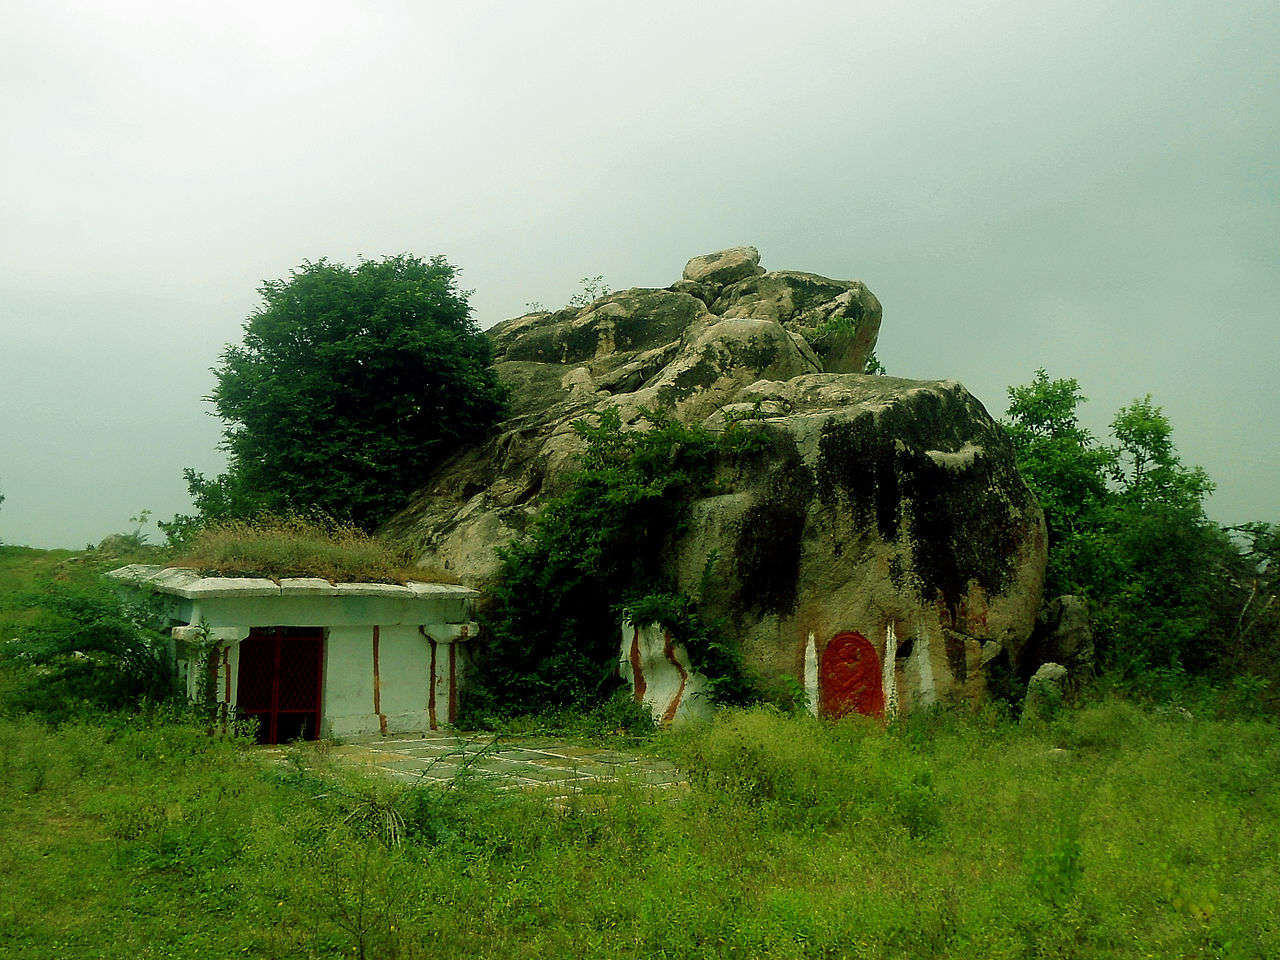 an old temple in mountains